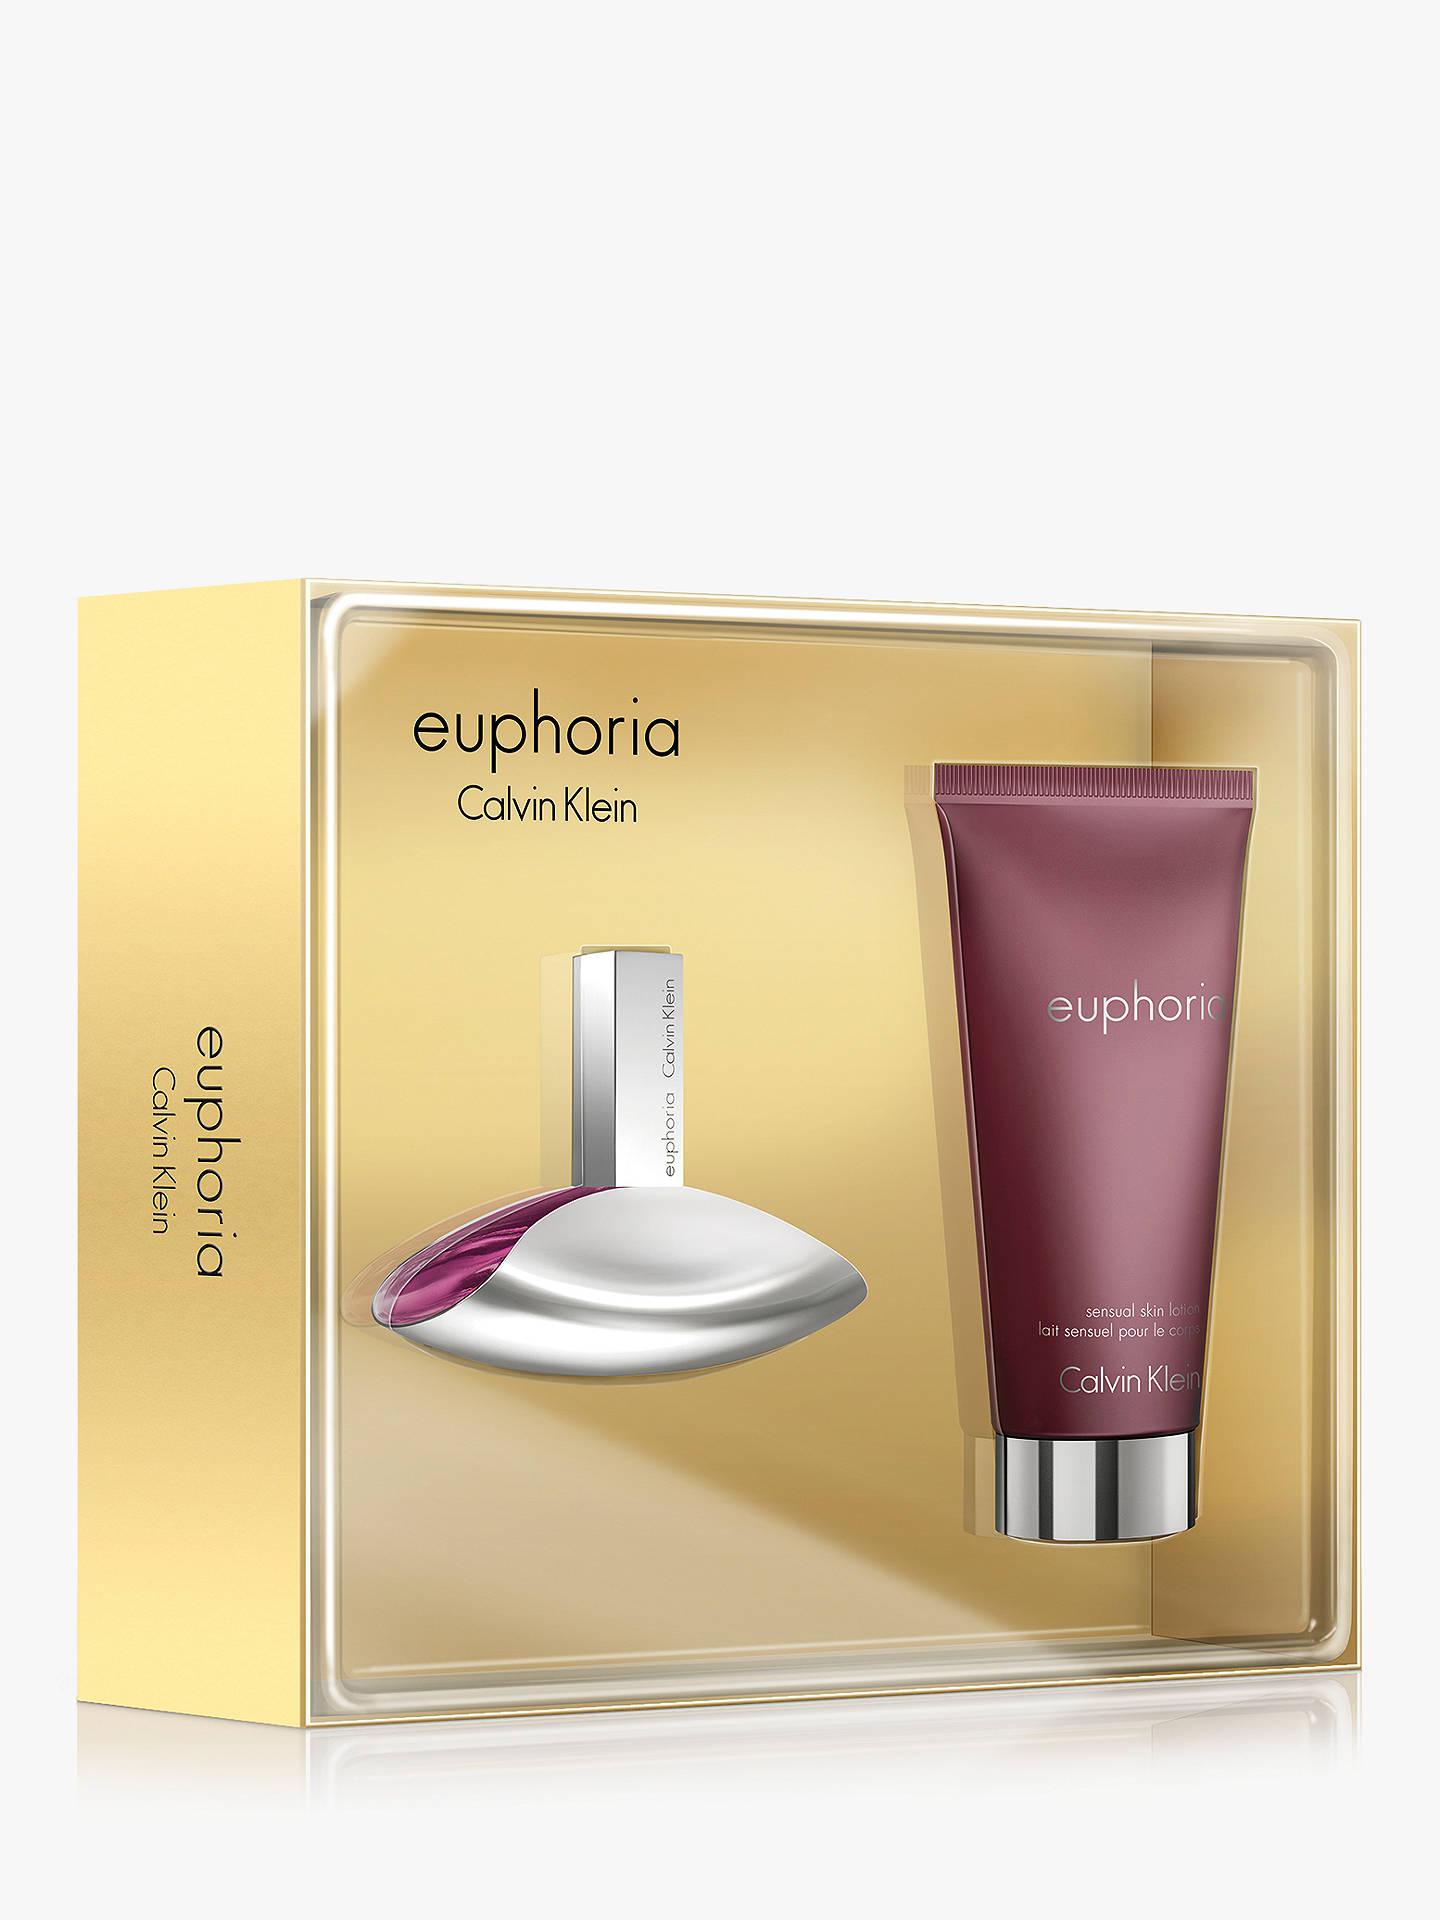 Calvin Klein Euphoria For Women 30ml Eau De Parfum Gift Set At John